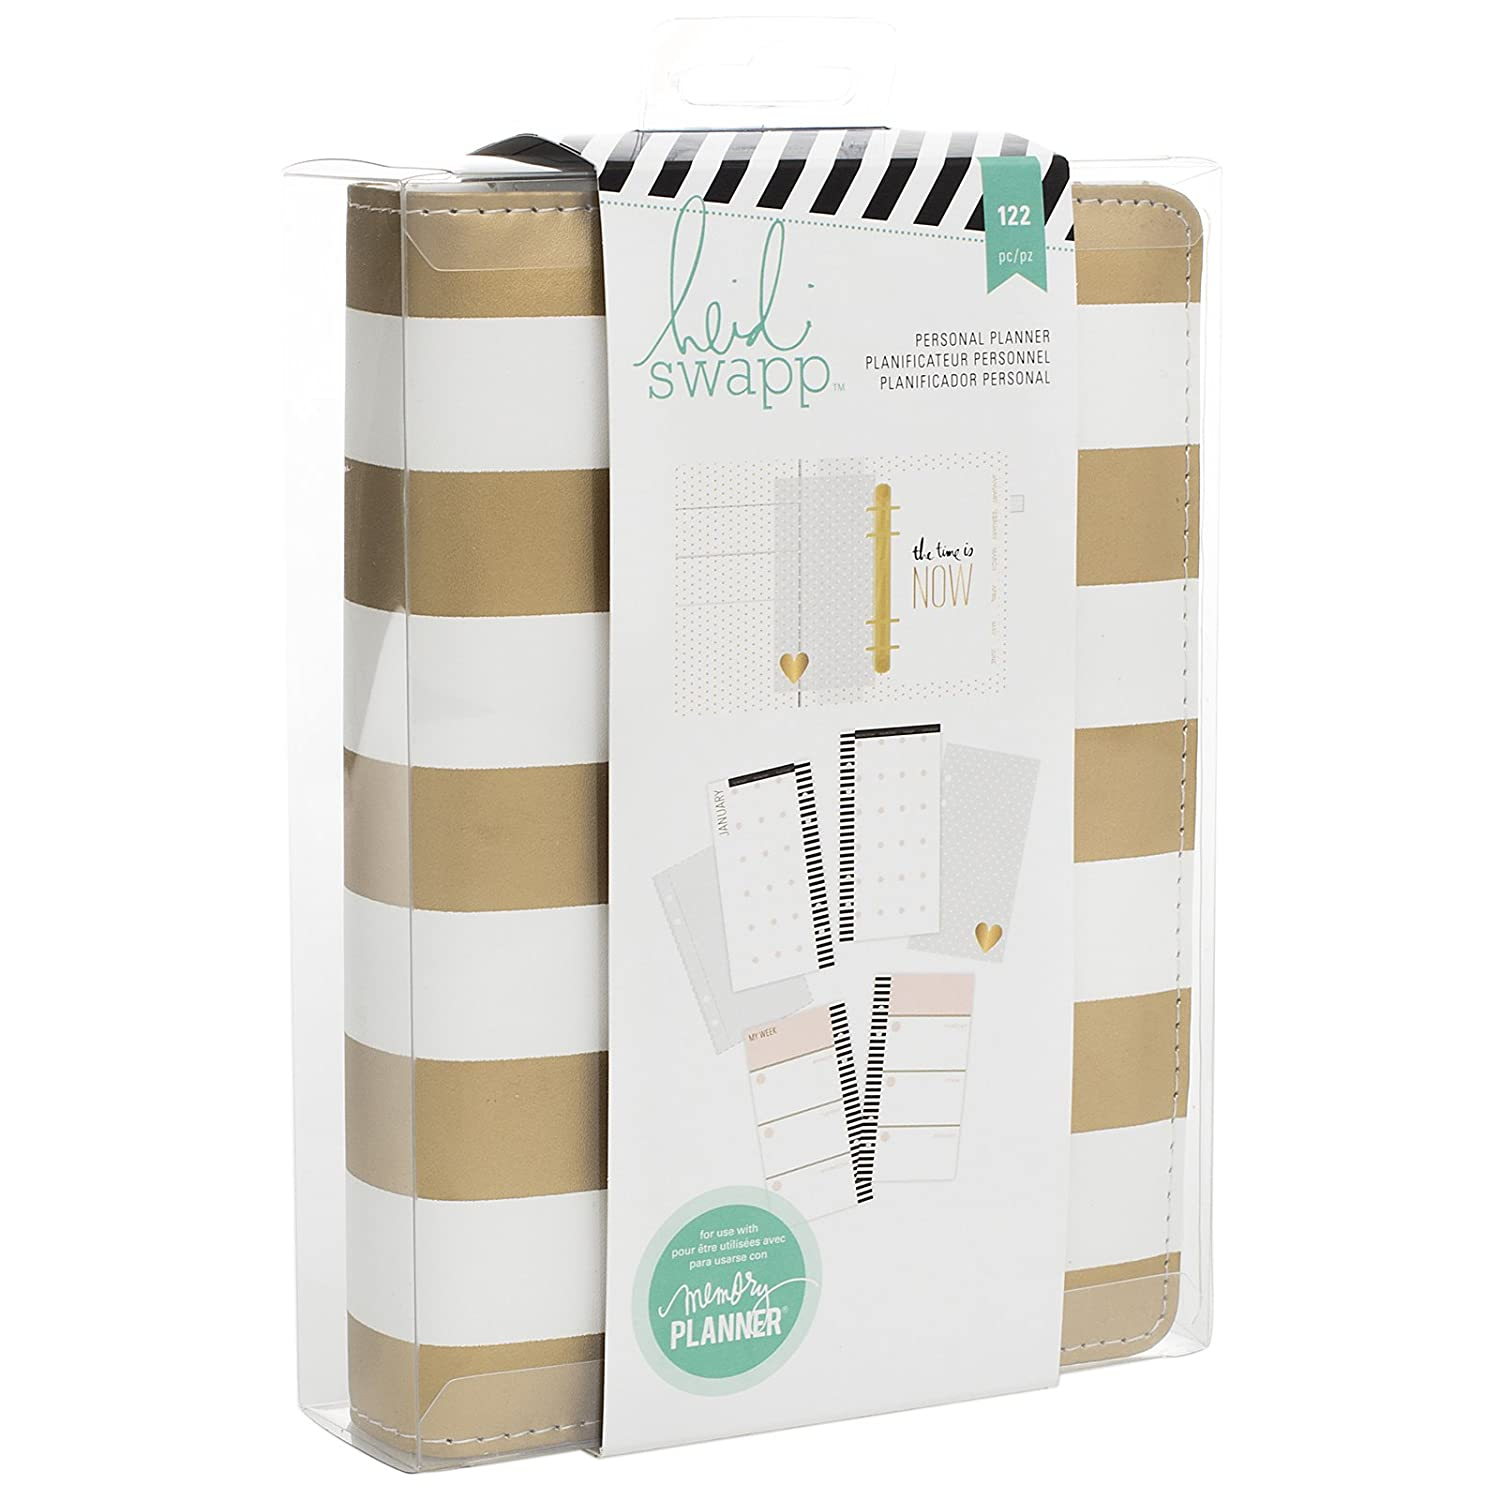 American Crafts 312596 Heidi Swapp Memory Planner Gold Foil Personal Planner Stripes 122 Piece Notions